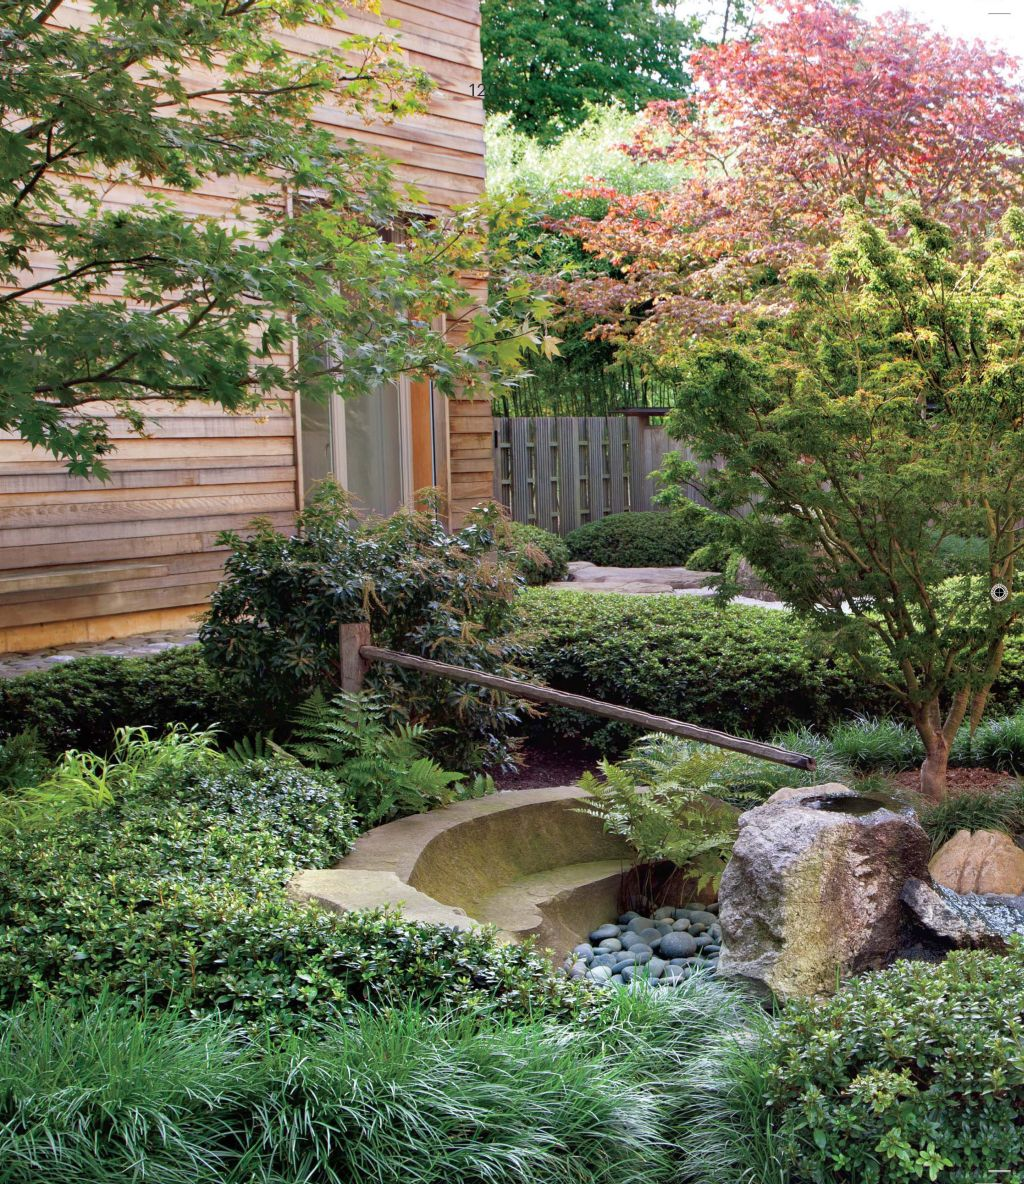 Beautiful japanese garden designs for small spaces Garden ideas for small spaces